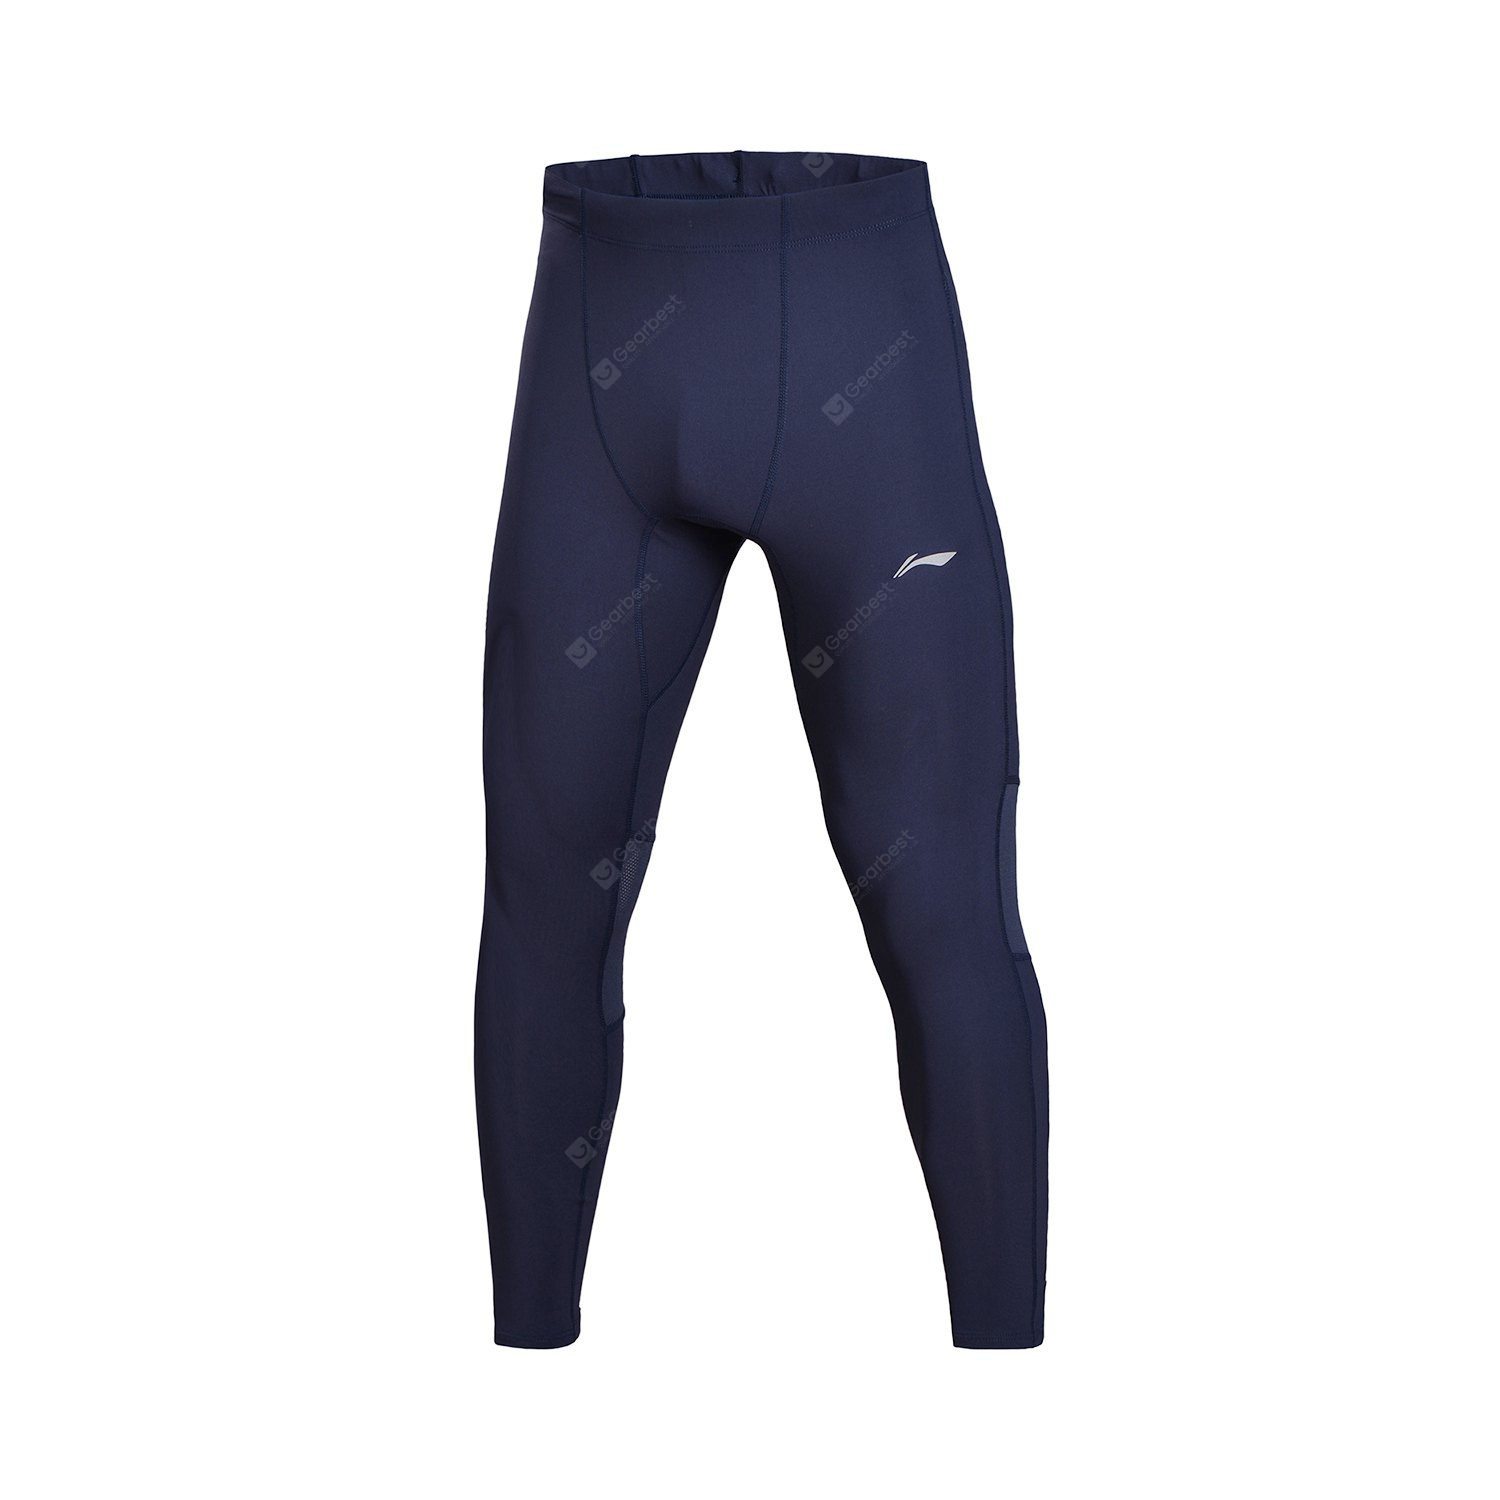 Li-Ning Men's  PRO Jogger Sports With Back Bag Layer Pants  AULN001-2